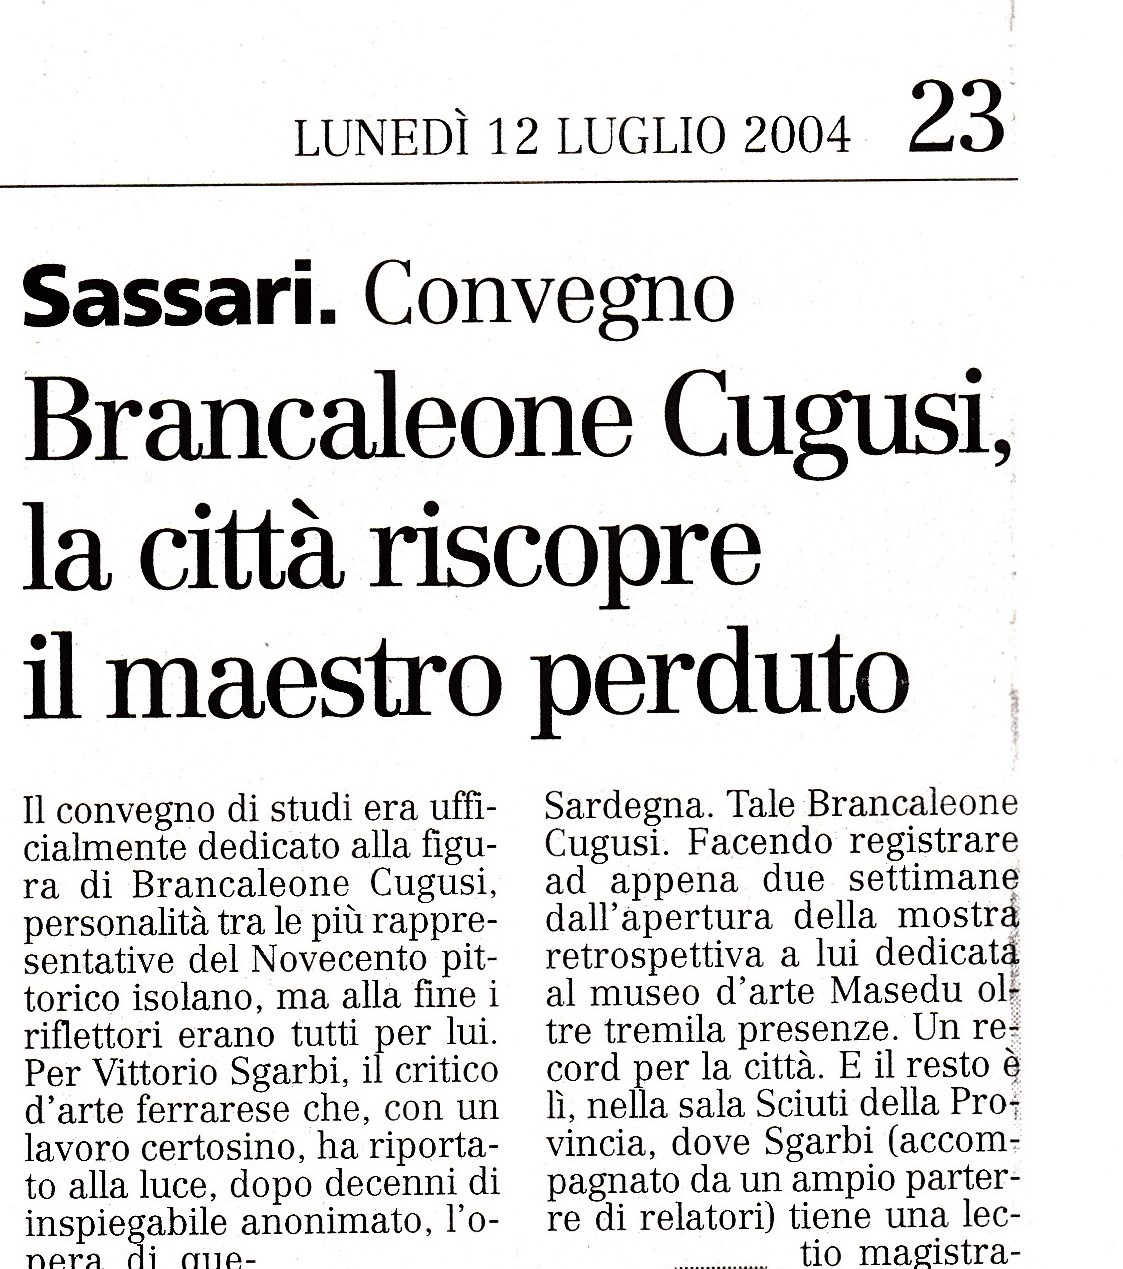 Convention Brancaleone Cugusi. The city of Sassari rediscovers the lost master.